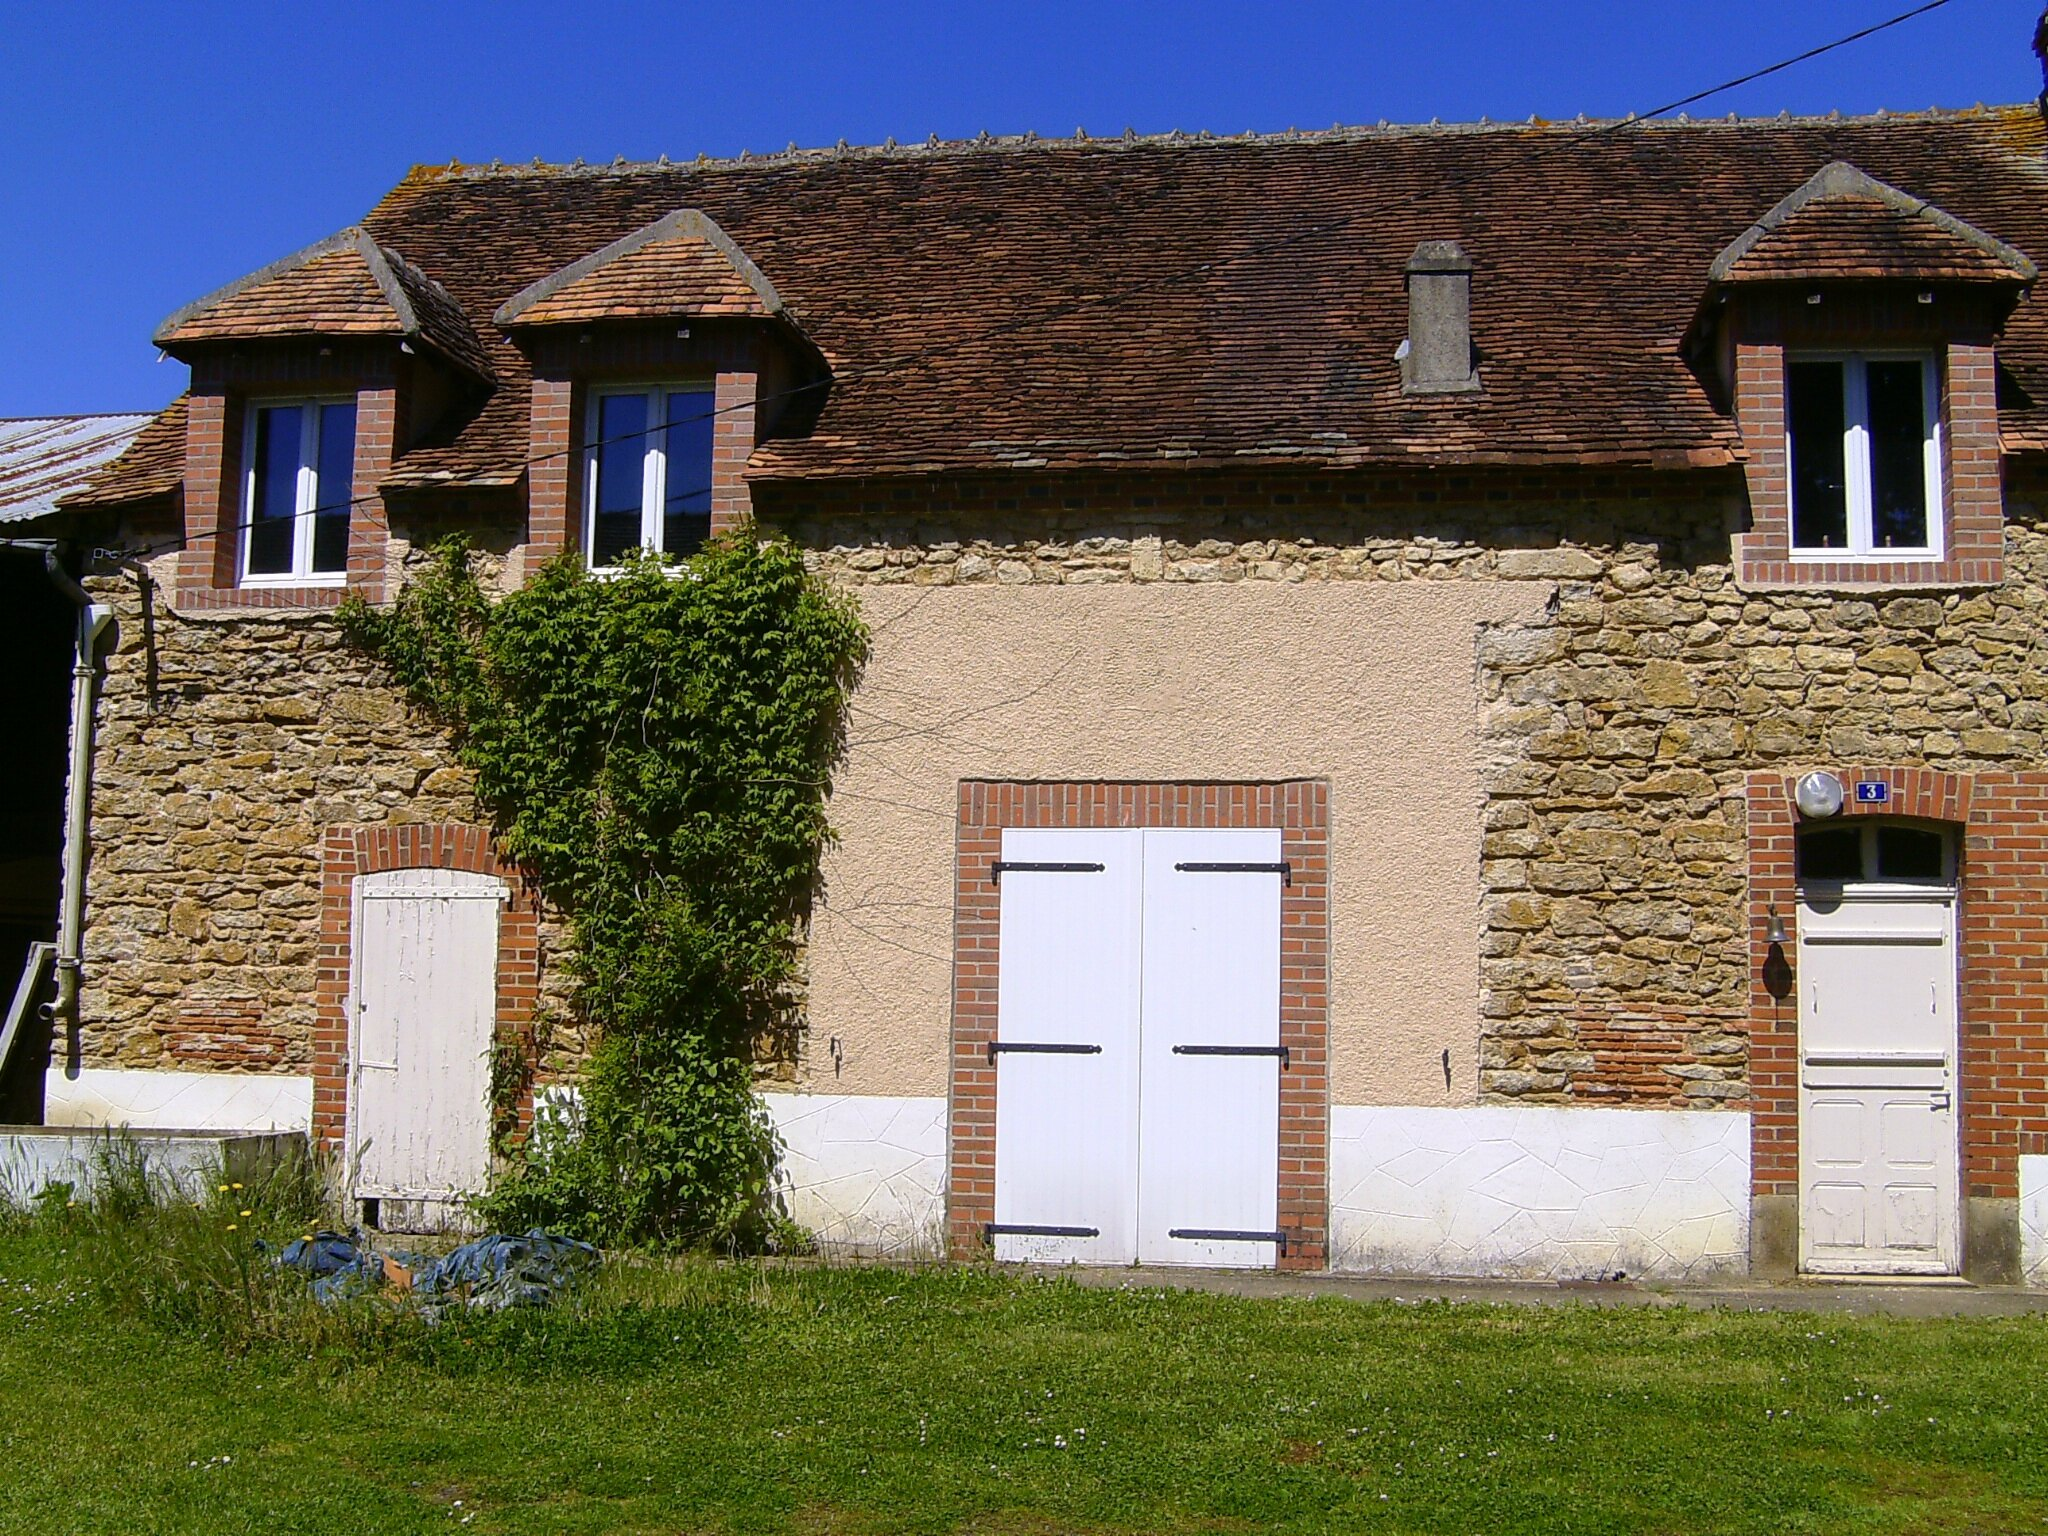 LA MAISON A VENDRE - THE COUNTRY HOUSE TO SELL